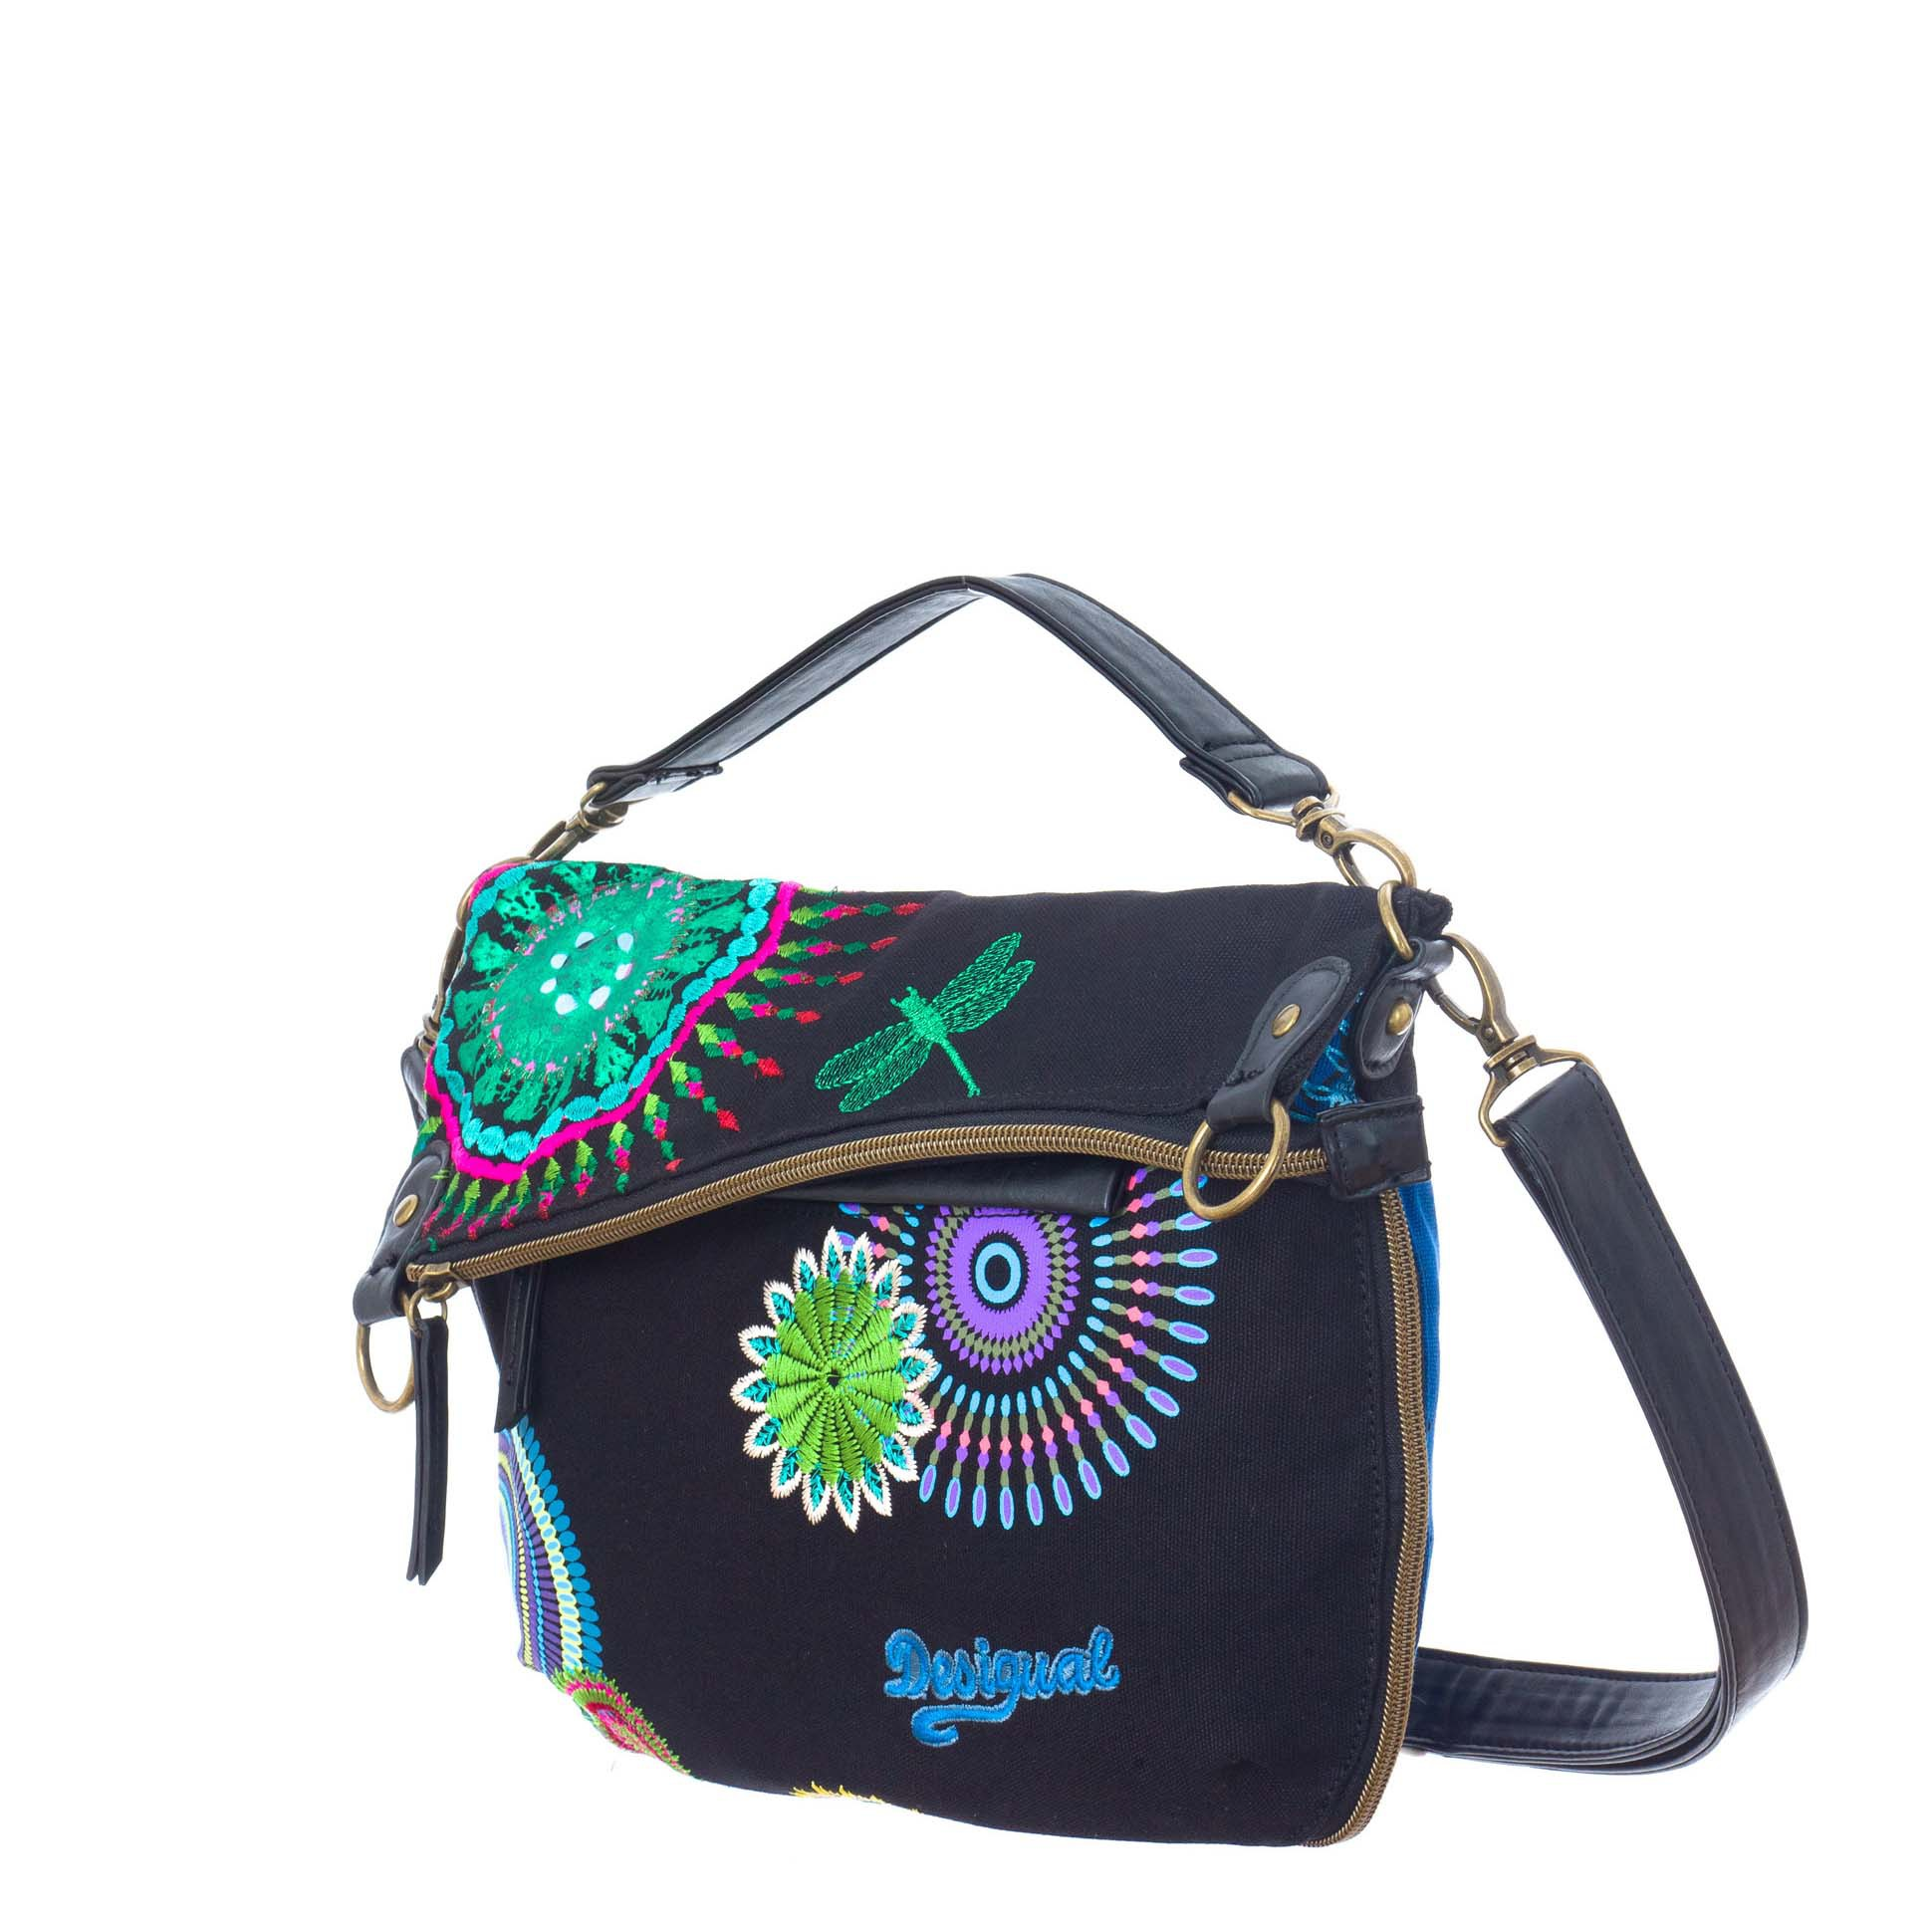 739f060dc25 Desigual Bols Folded S Patch Sac Bandouliã â¨re 35 40 62